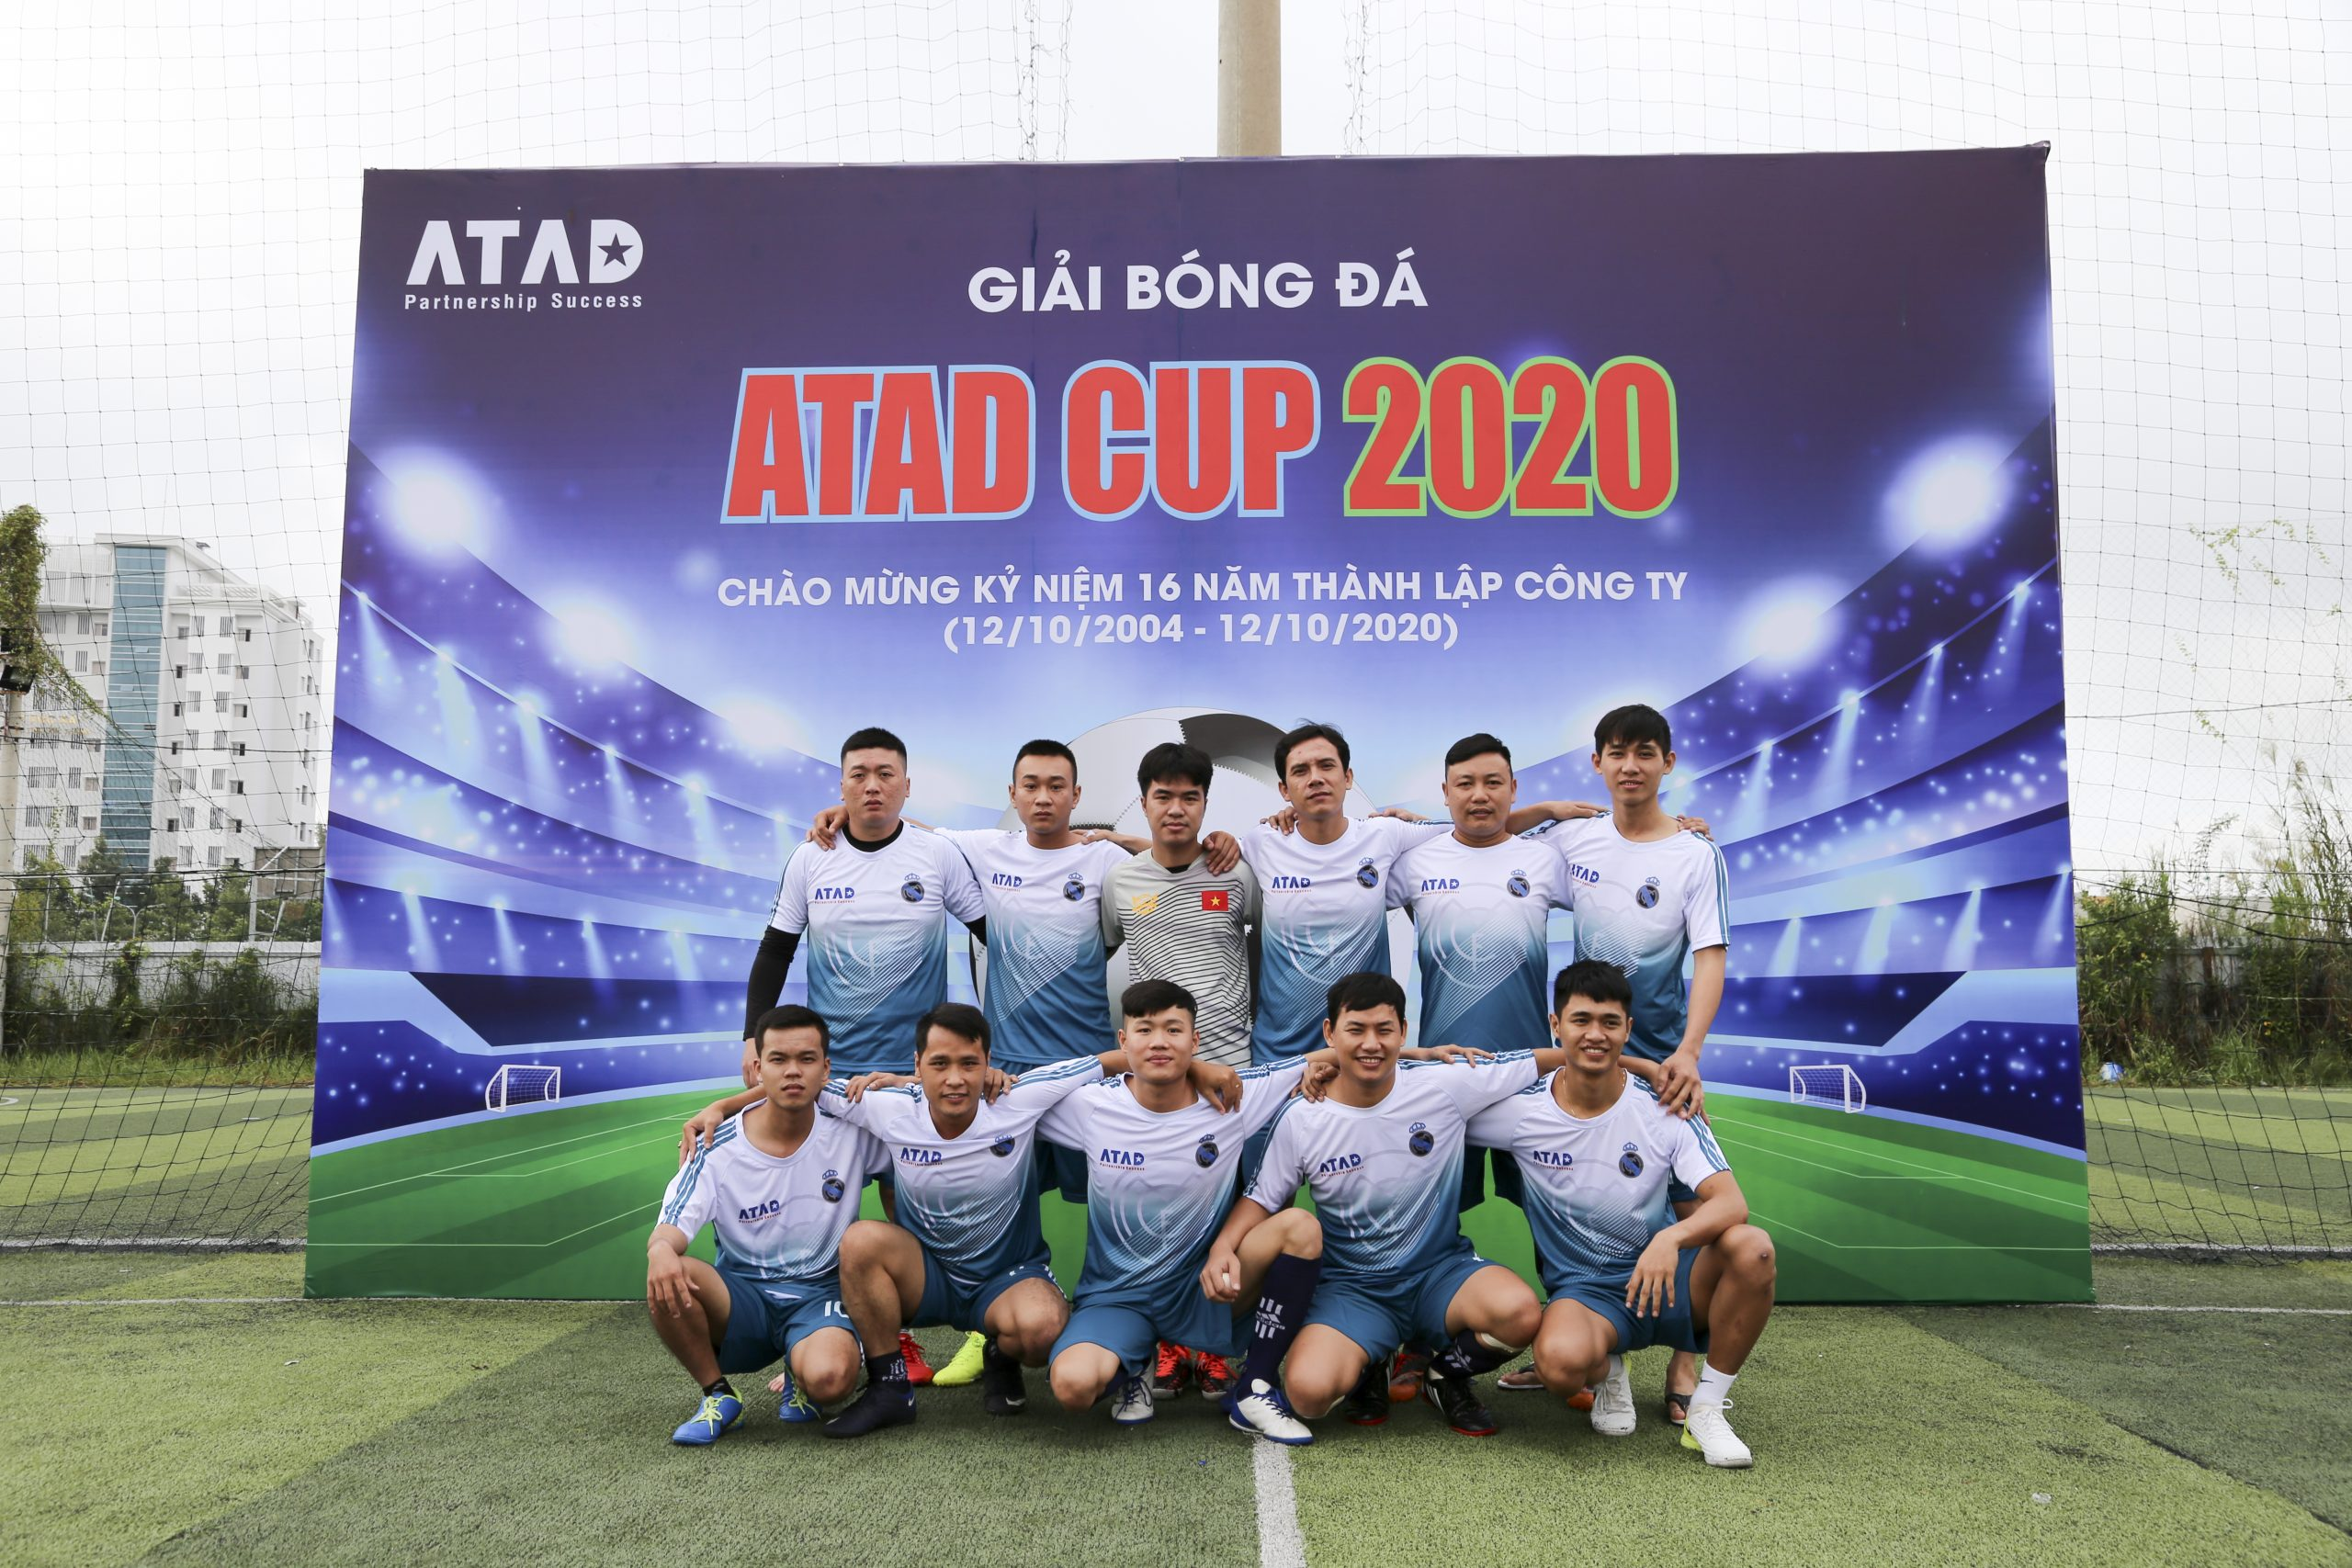 ATAD CUP 2020 football tournament to welcome Company's 16th anniversary